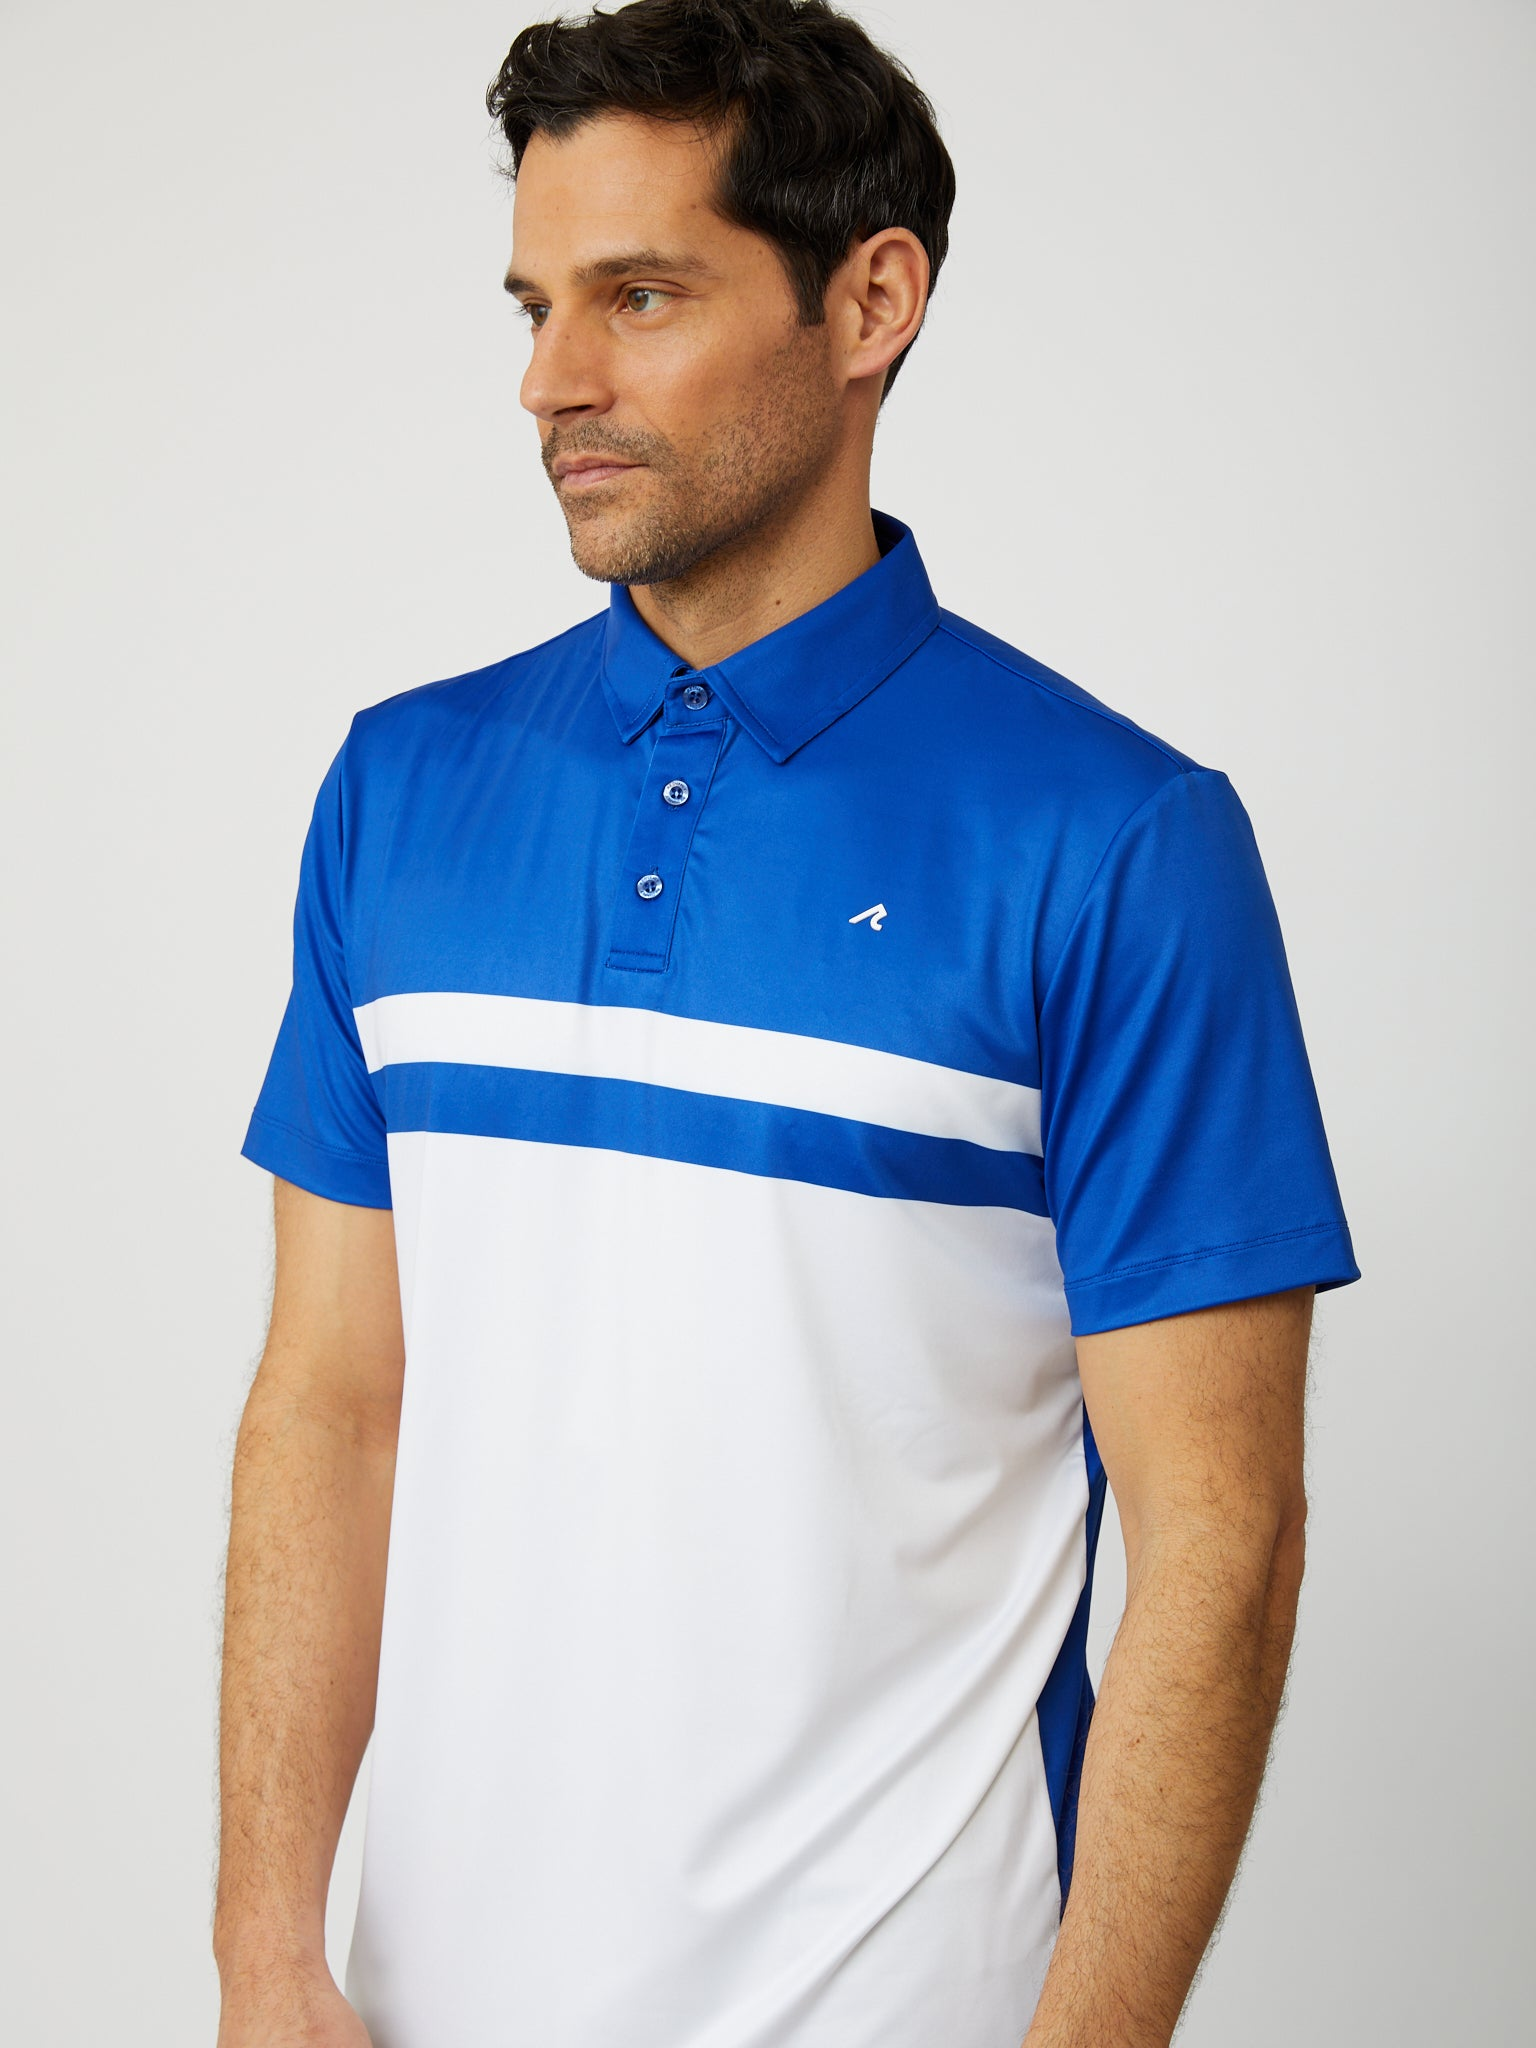 Danvers Polo in Reflex Blue/White